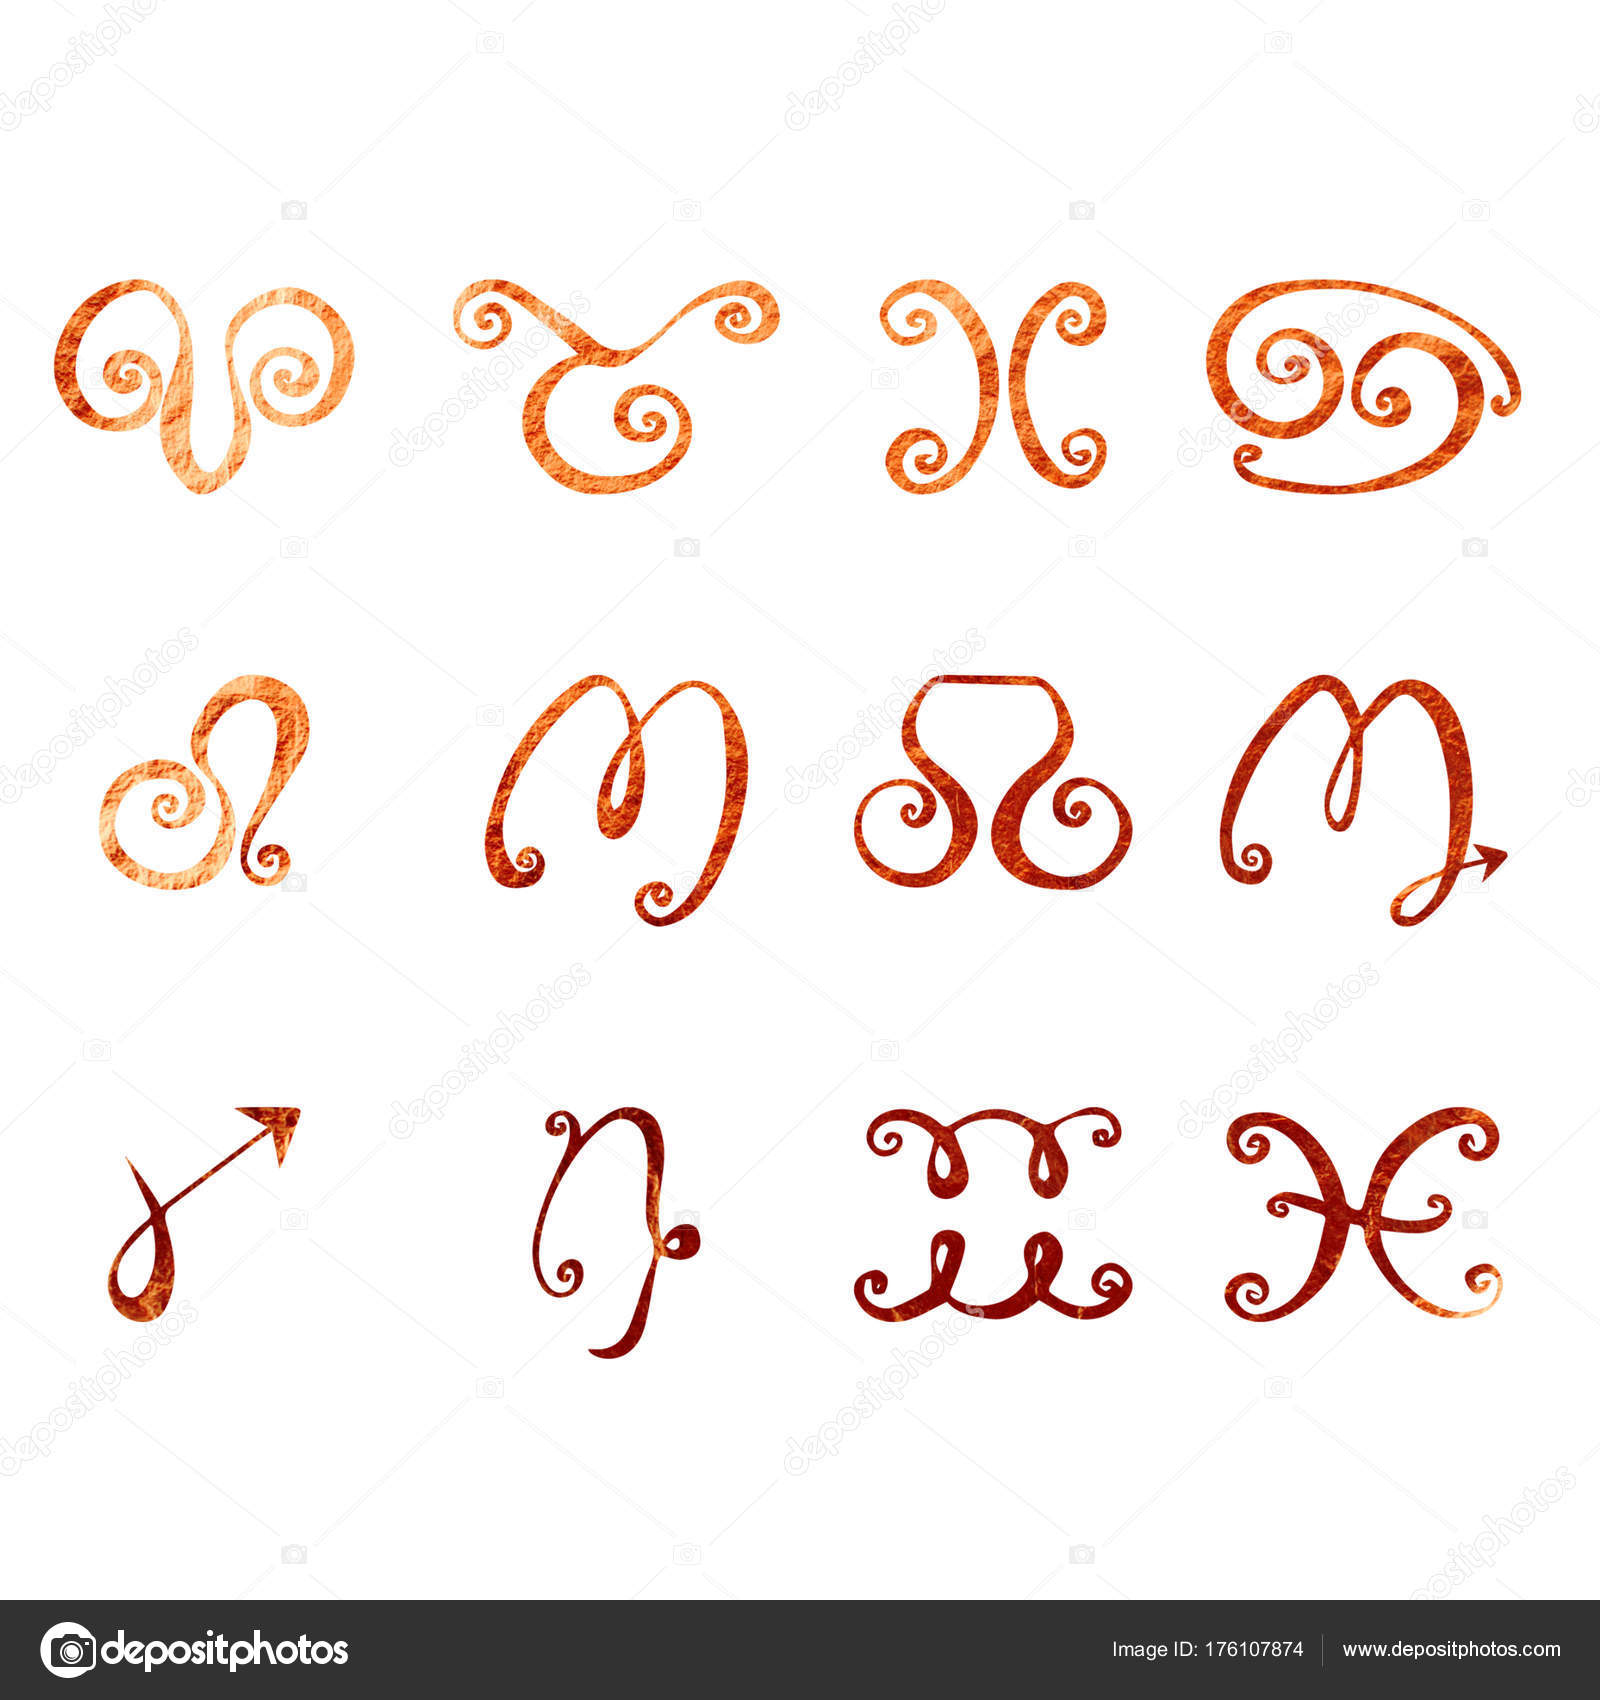 Horoscope texture of copper stock photo veronikas 176107874 horoscope texture of copper stock photo buycottarizona Image collections